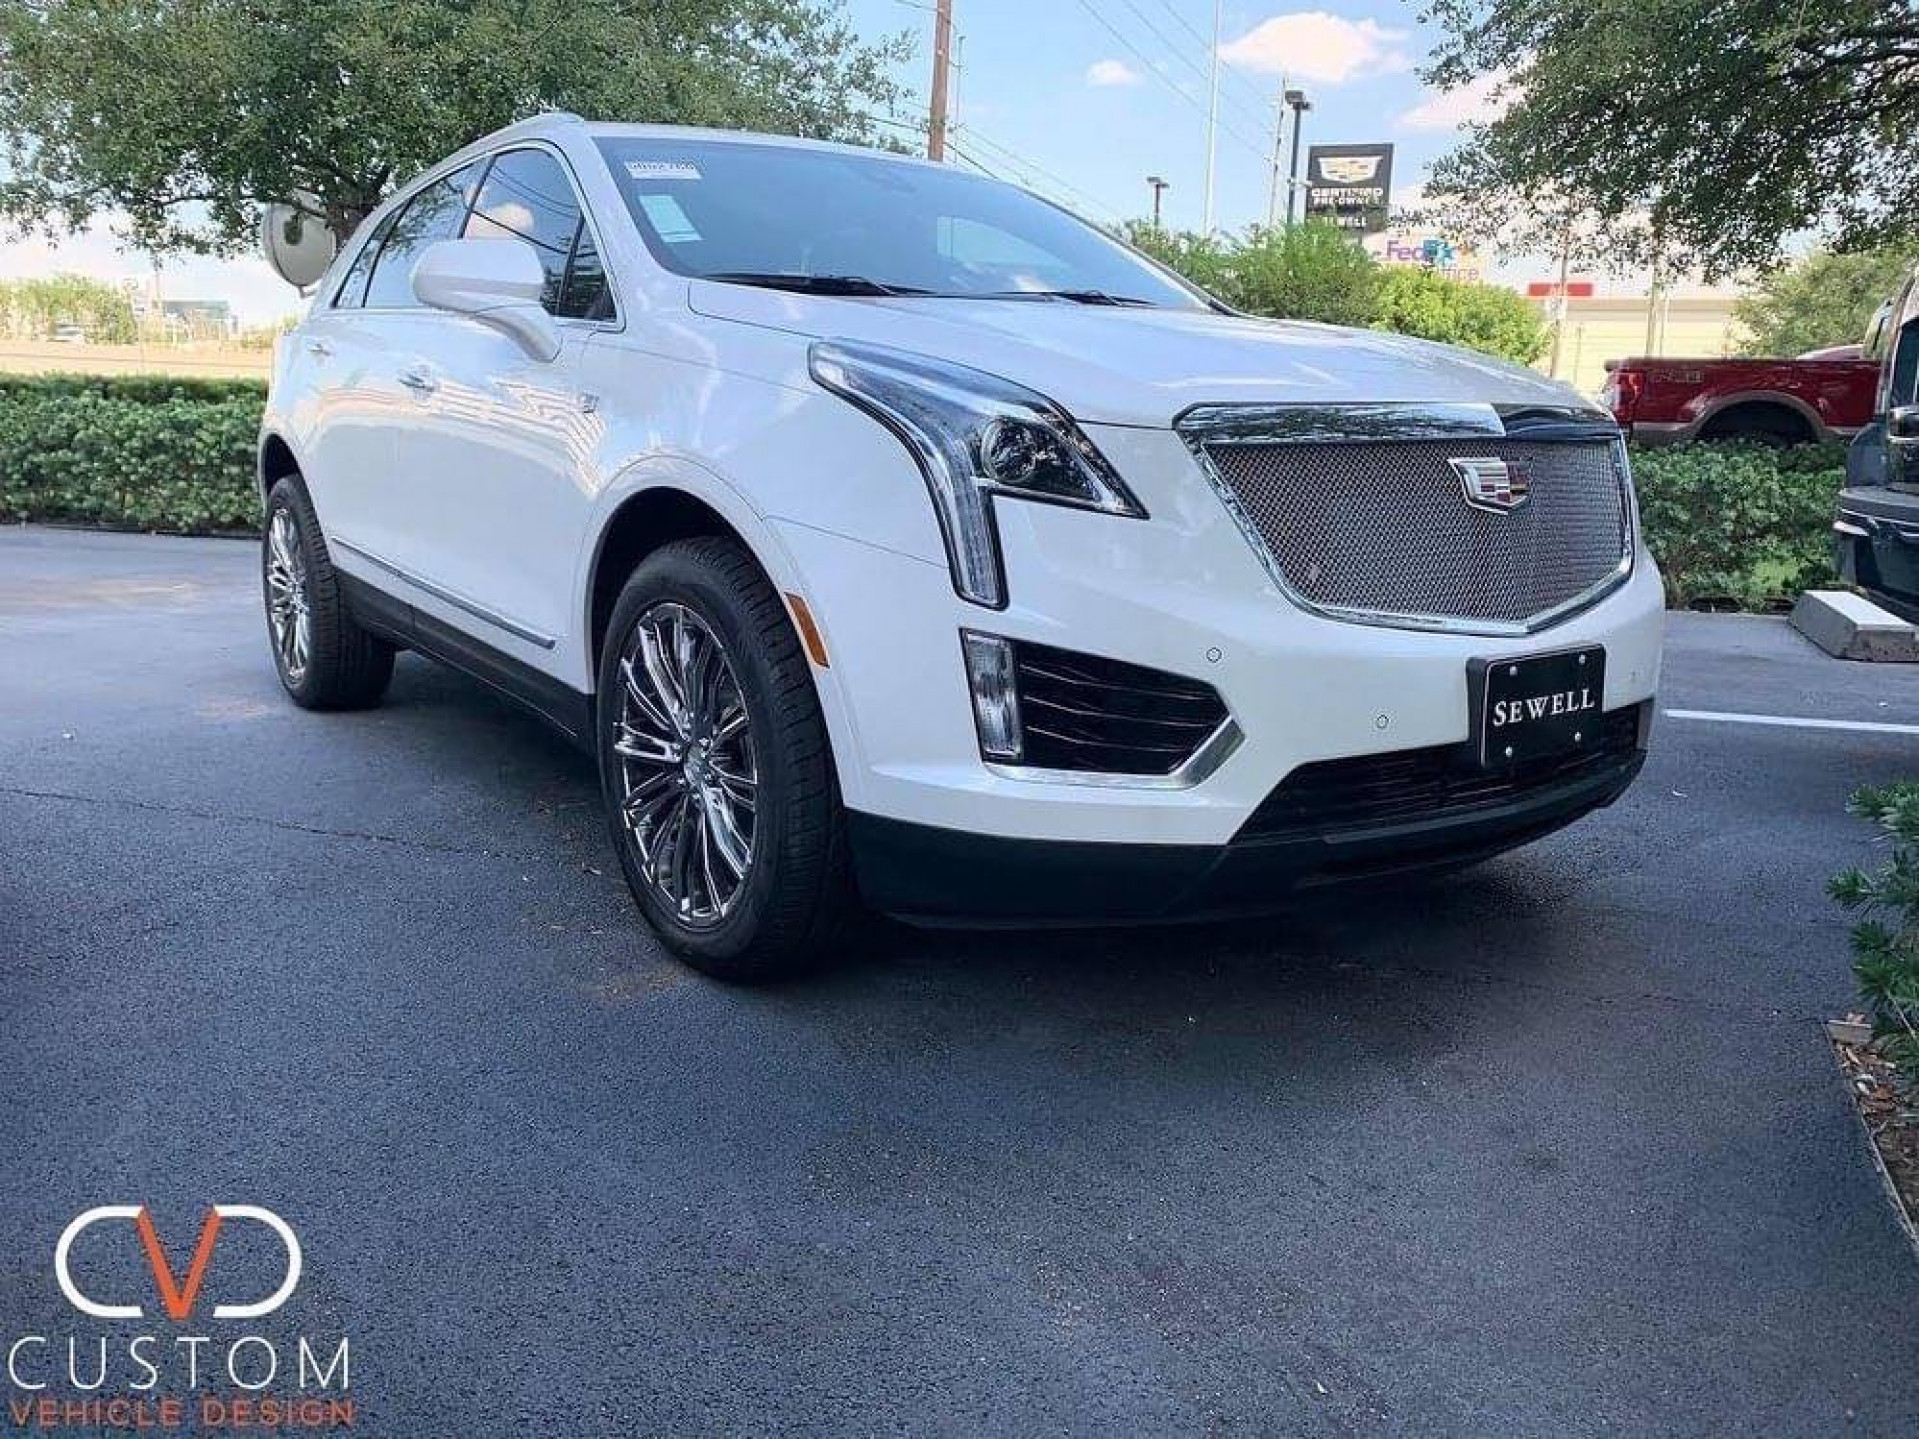 "2020 Cadillac XT5 with 20"" Vogue VT386 wheels and Signature V tyres"